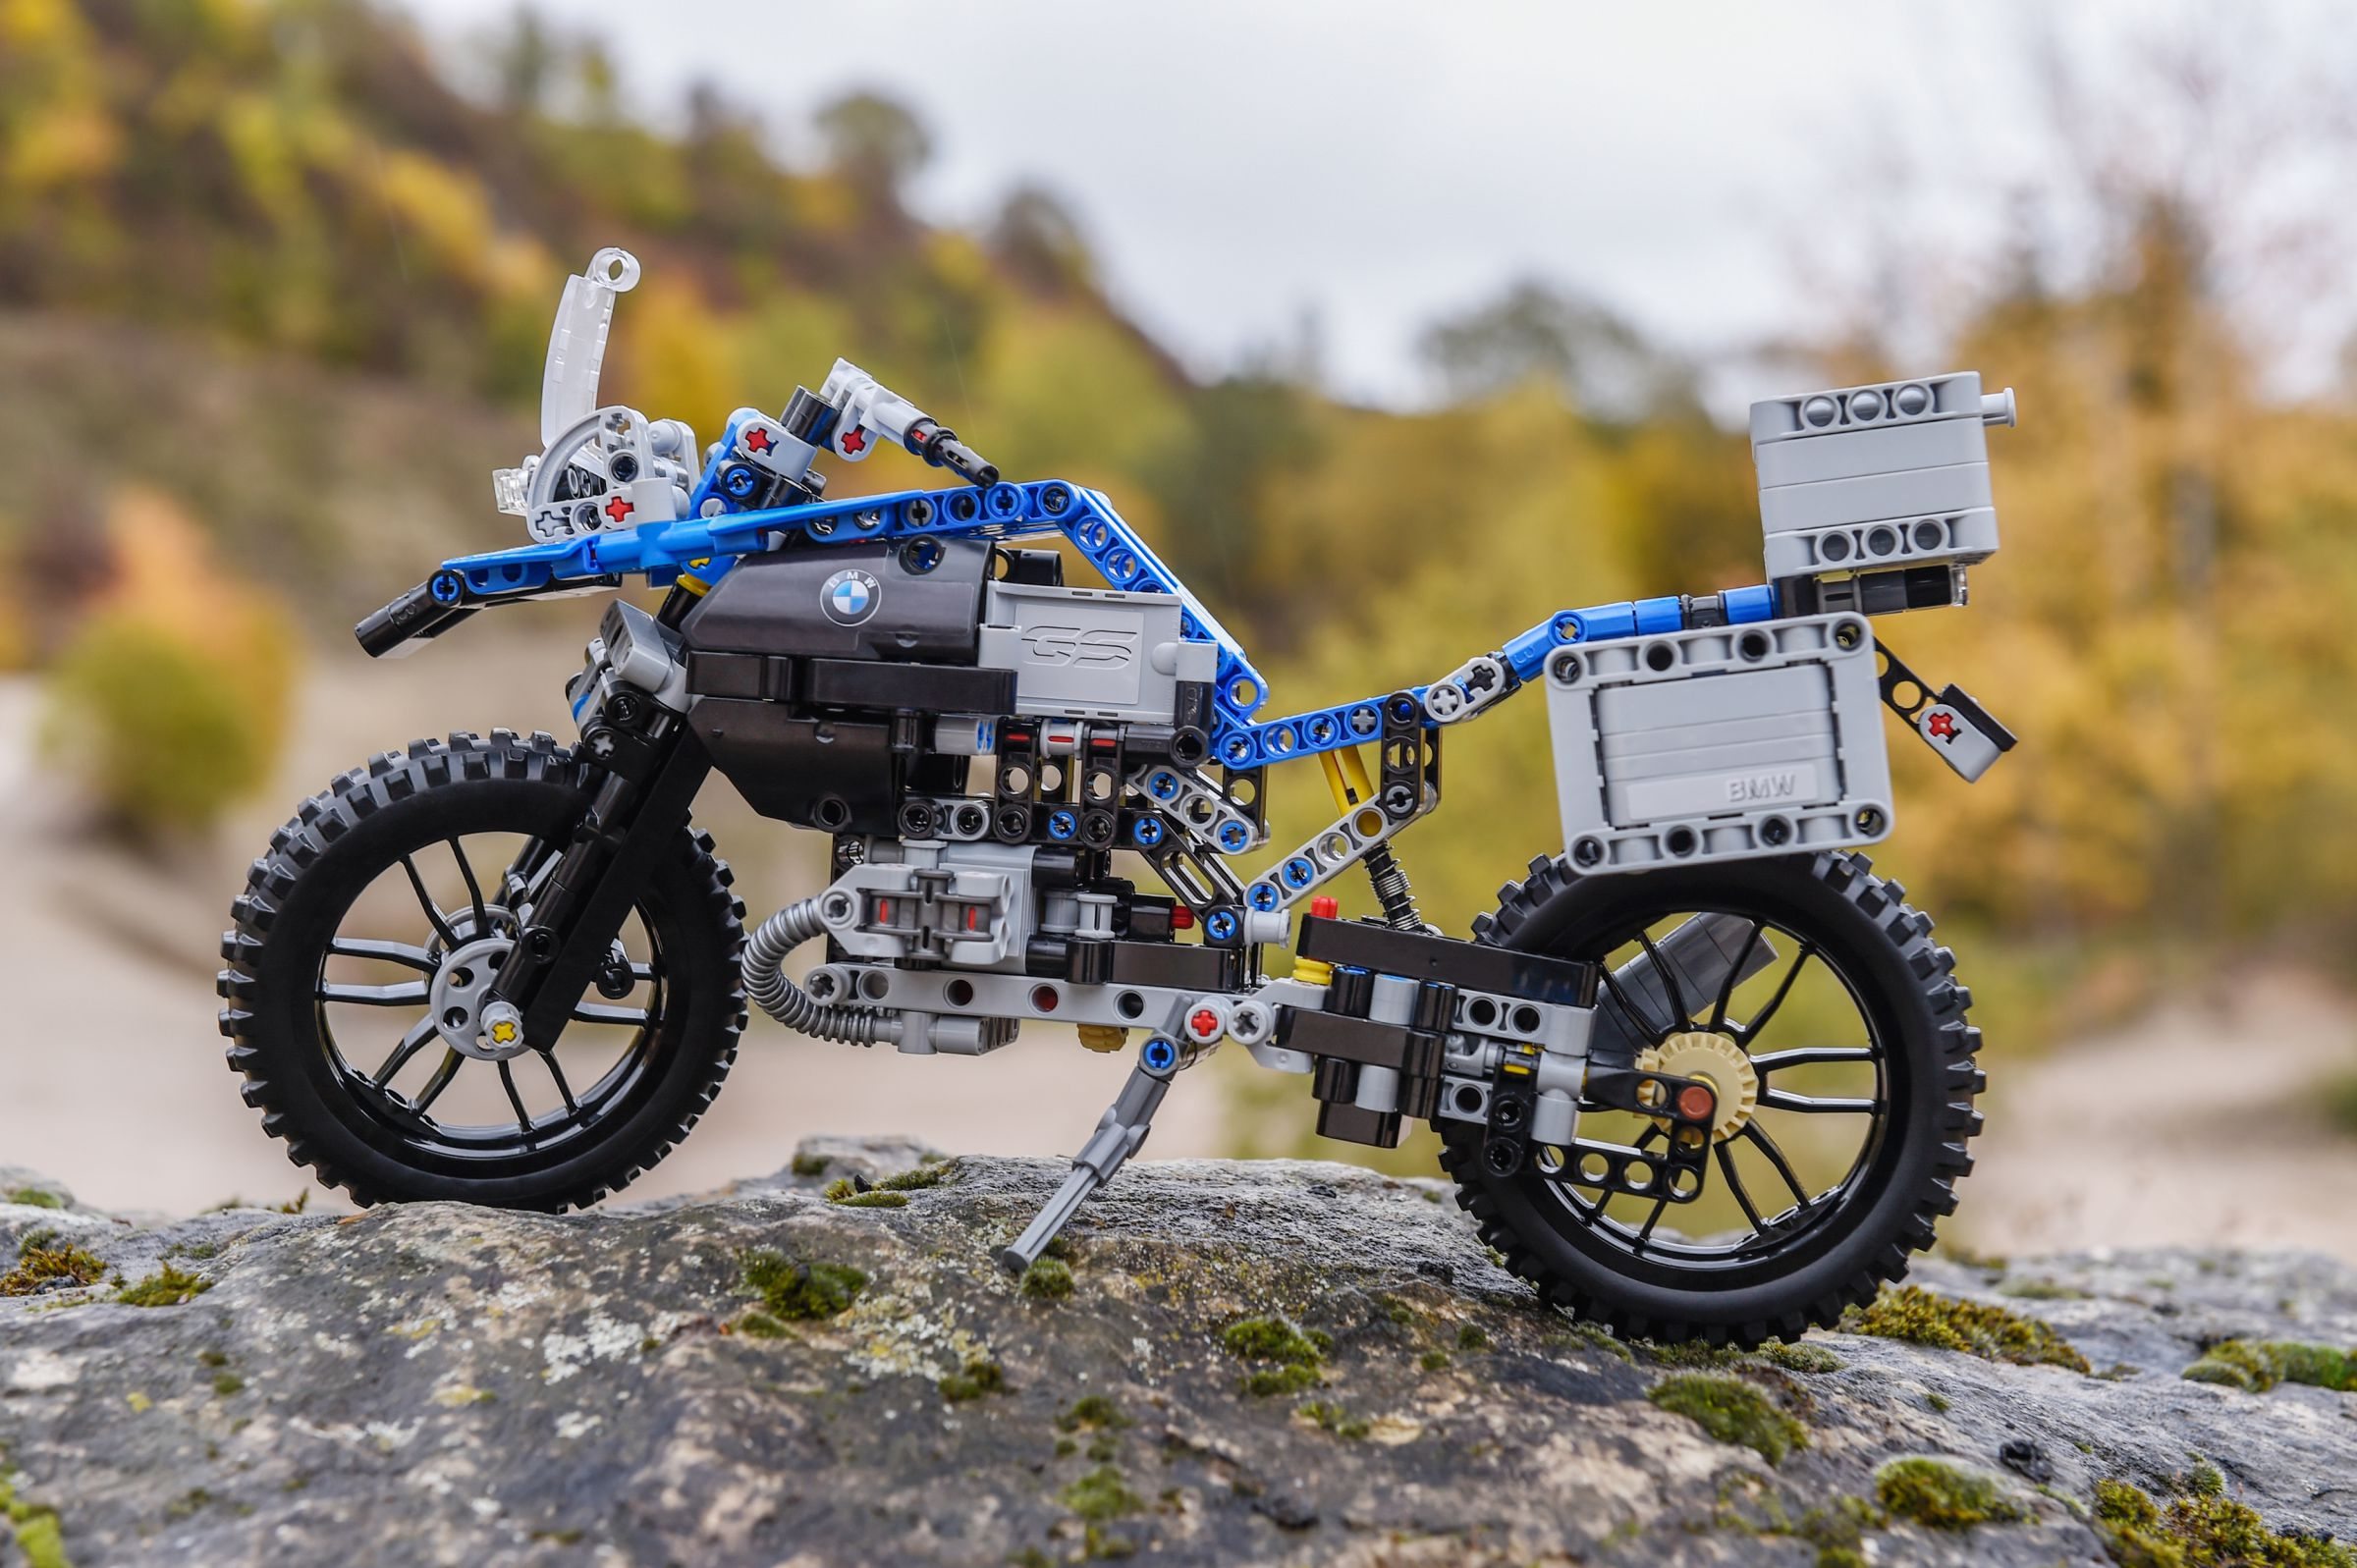 LEGO Technic 42063 BMW R 1200 GS Adventure LEGO_42063_bmw-R-1200-GS-Adventure_img11.jpg